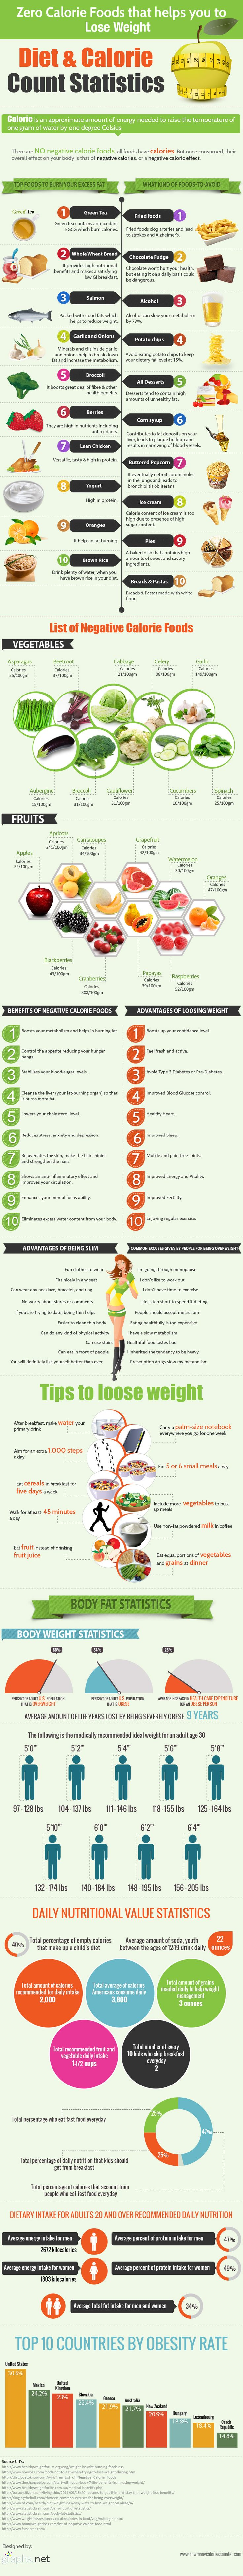 Zero calorie foods that help you lose weight. Diet and calorie count statistics #rawjuiceco #health #weightloss #diet #loseweight #food